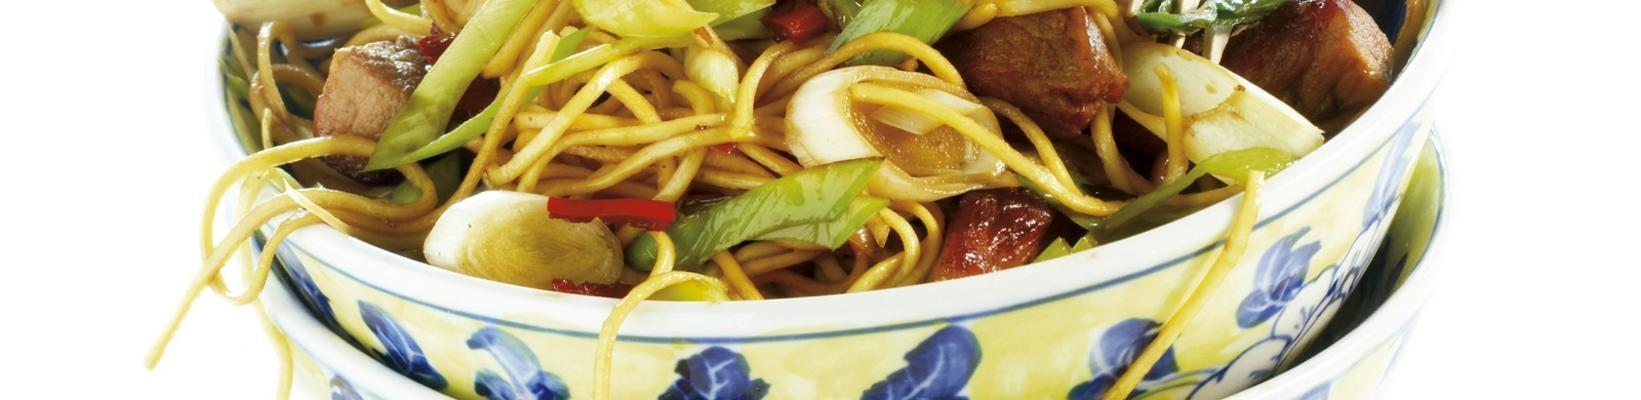 noodles with spicy meat